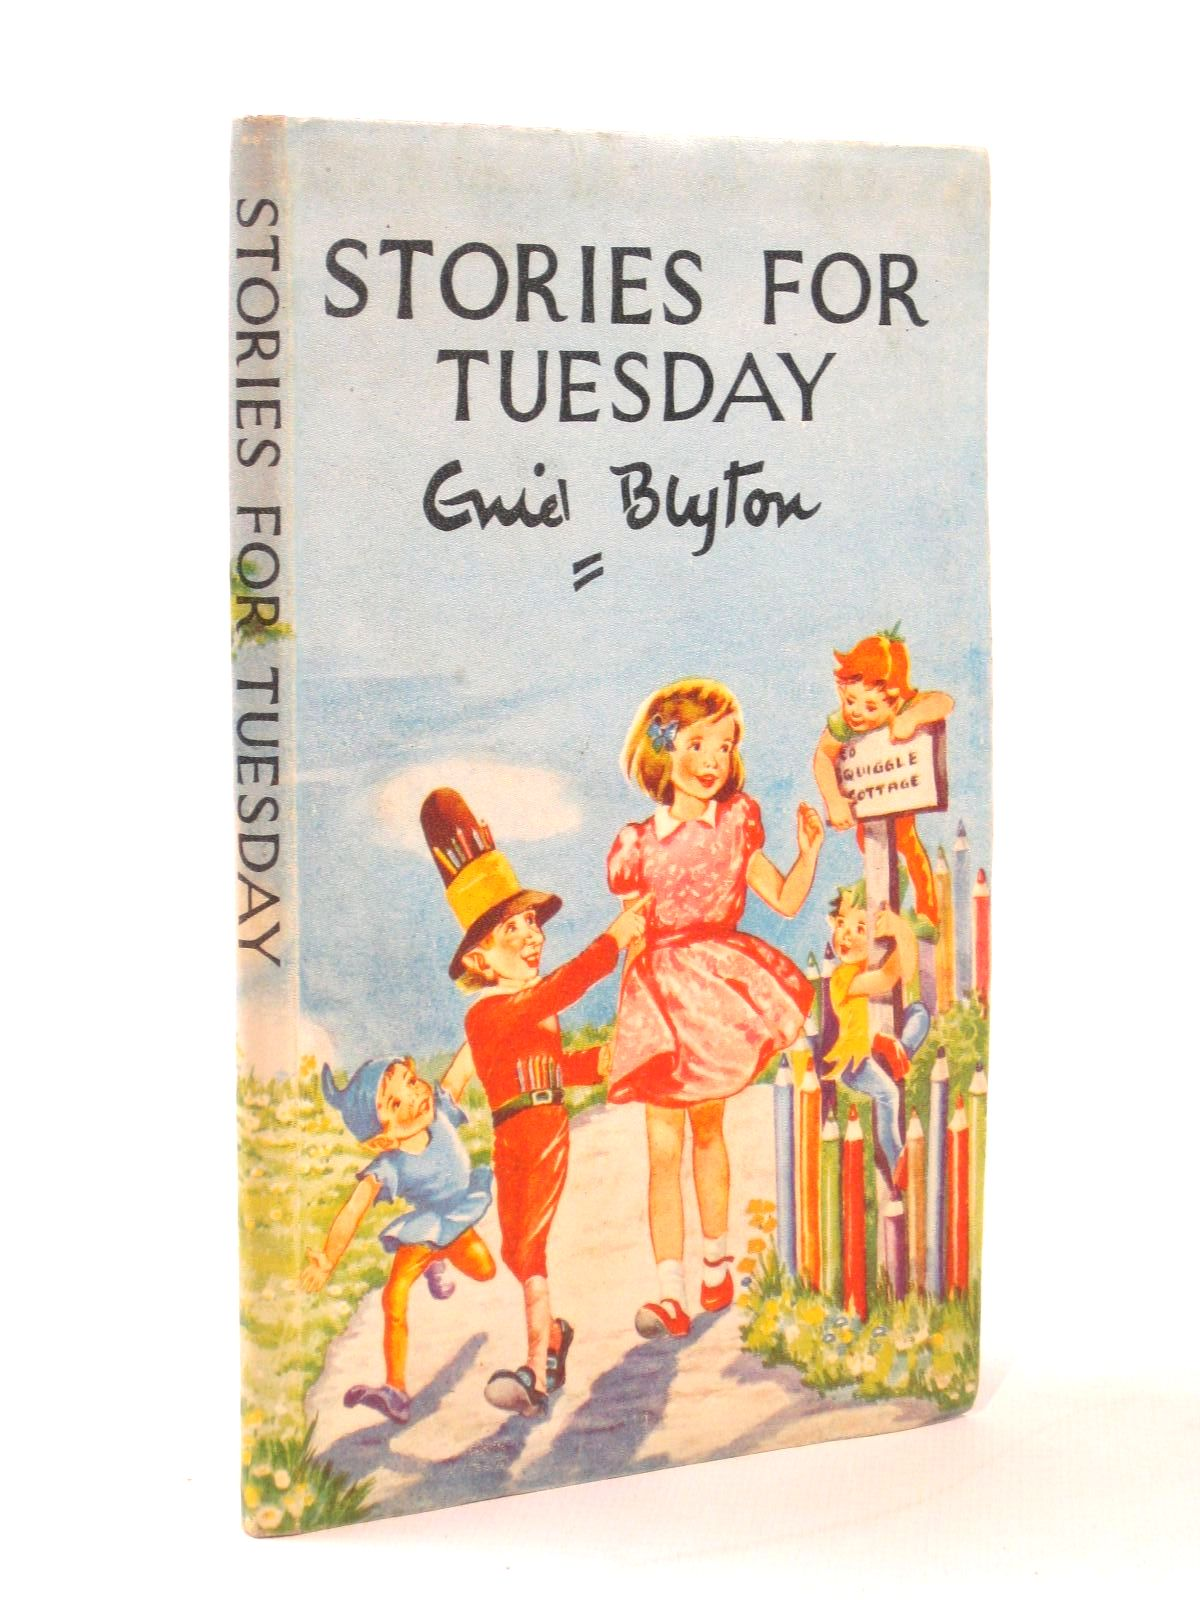 Photo of STORIES FOR TUESDAY written by Blyton, Enid published by Oliphants Ltd. (STOCK CODE: 1316764)  for sale by Stella & Rose's Books